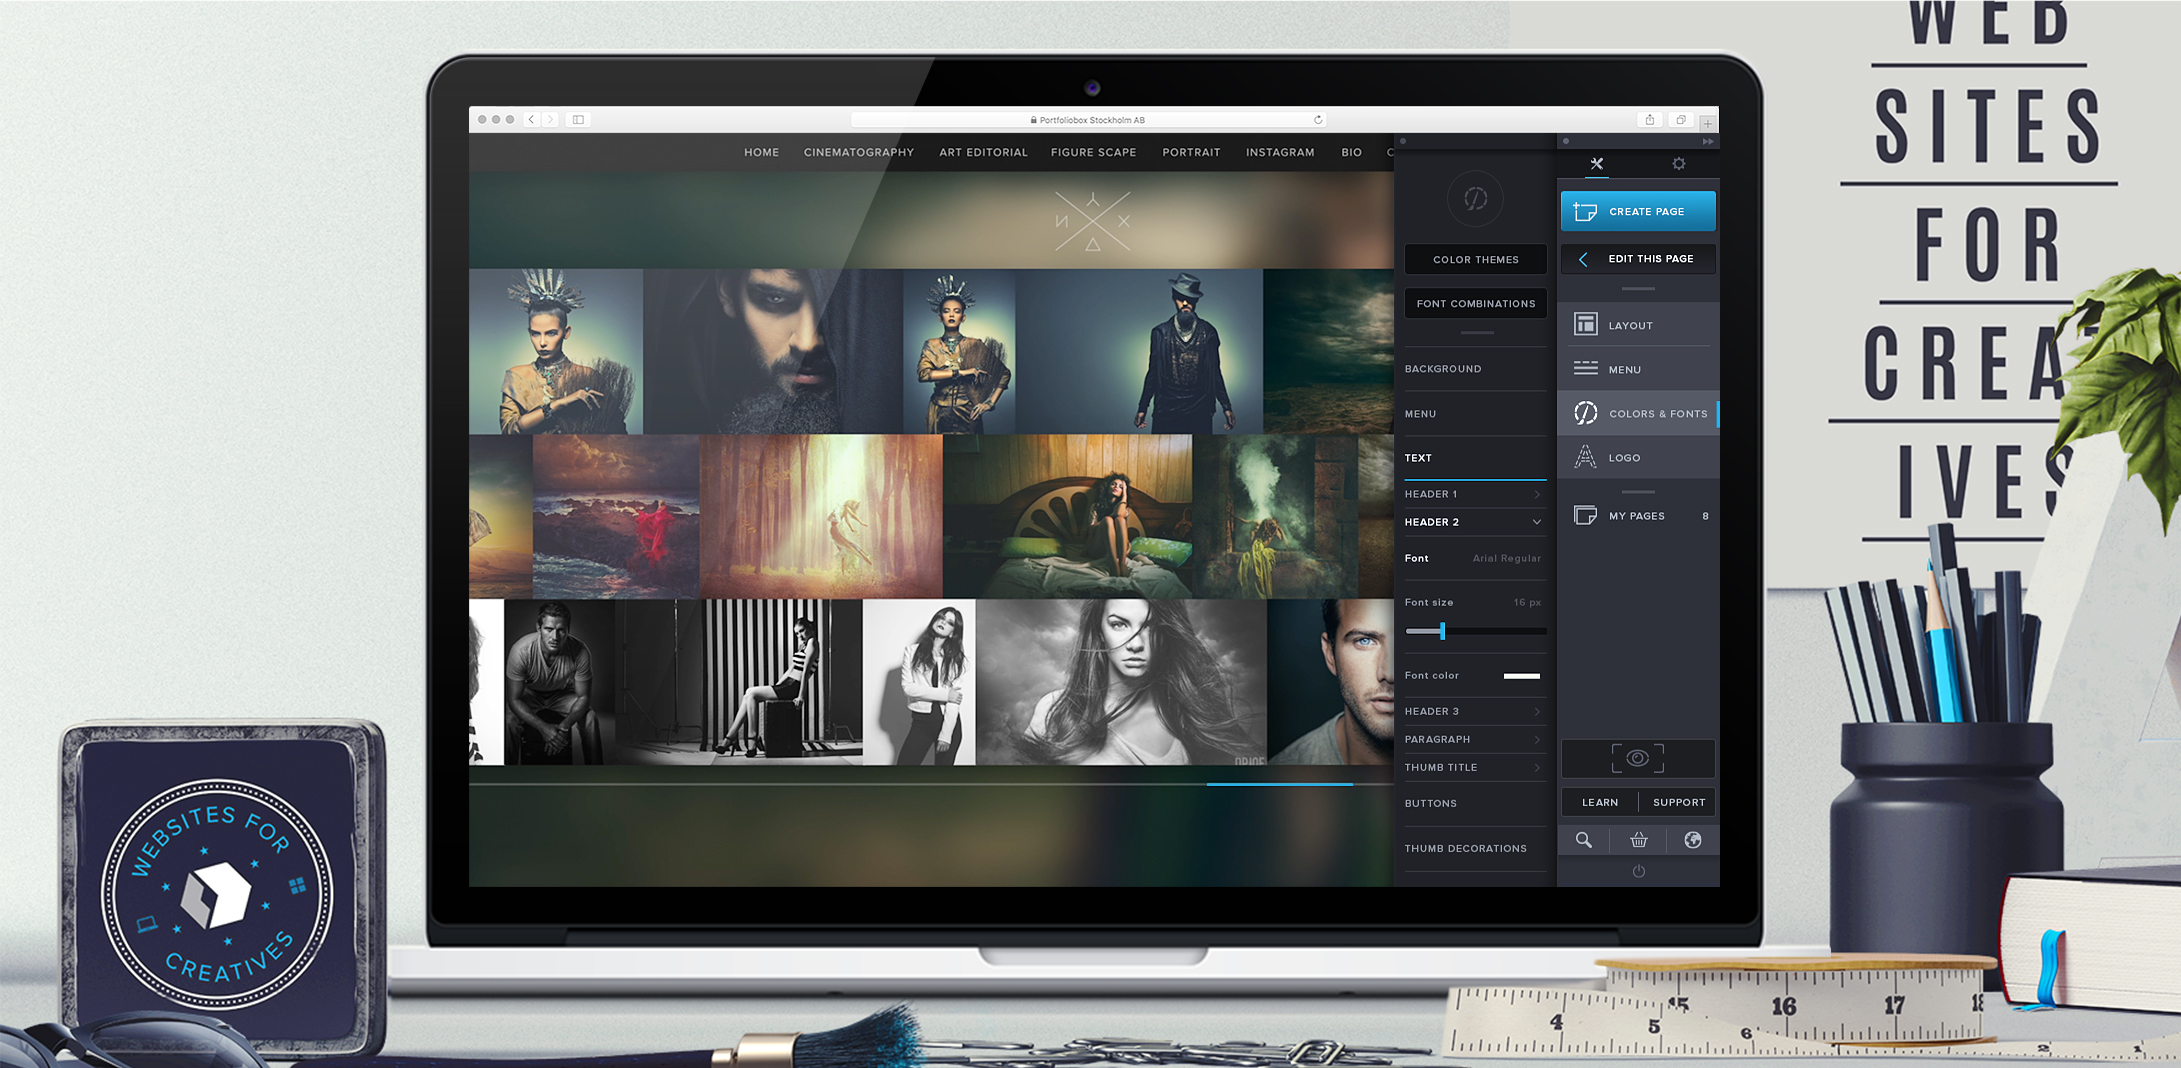 Portfoliobox website builder will now be free for students